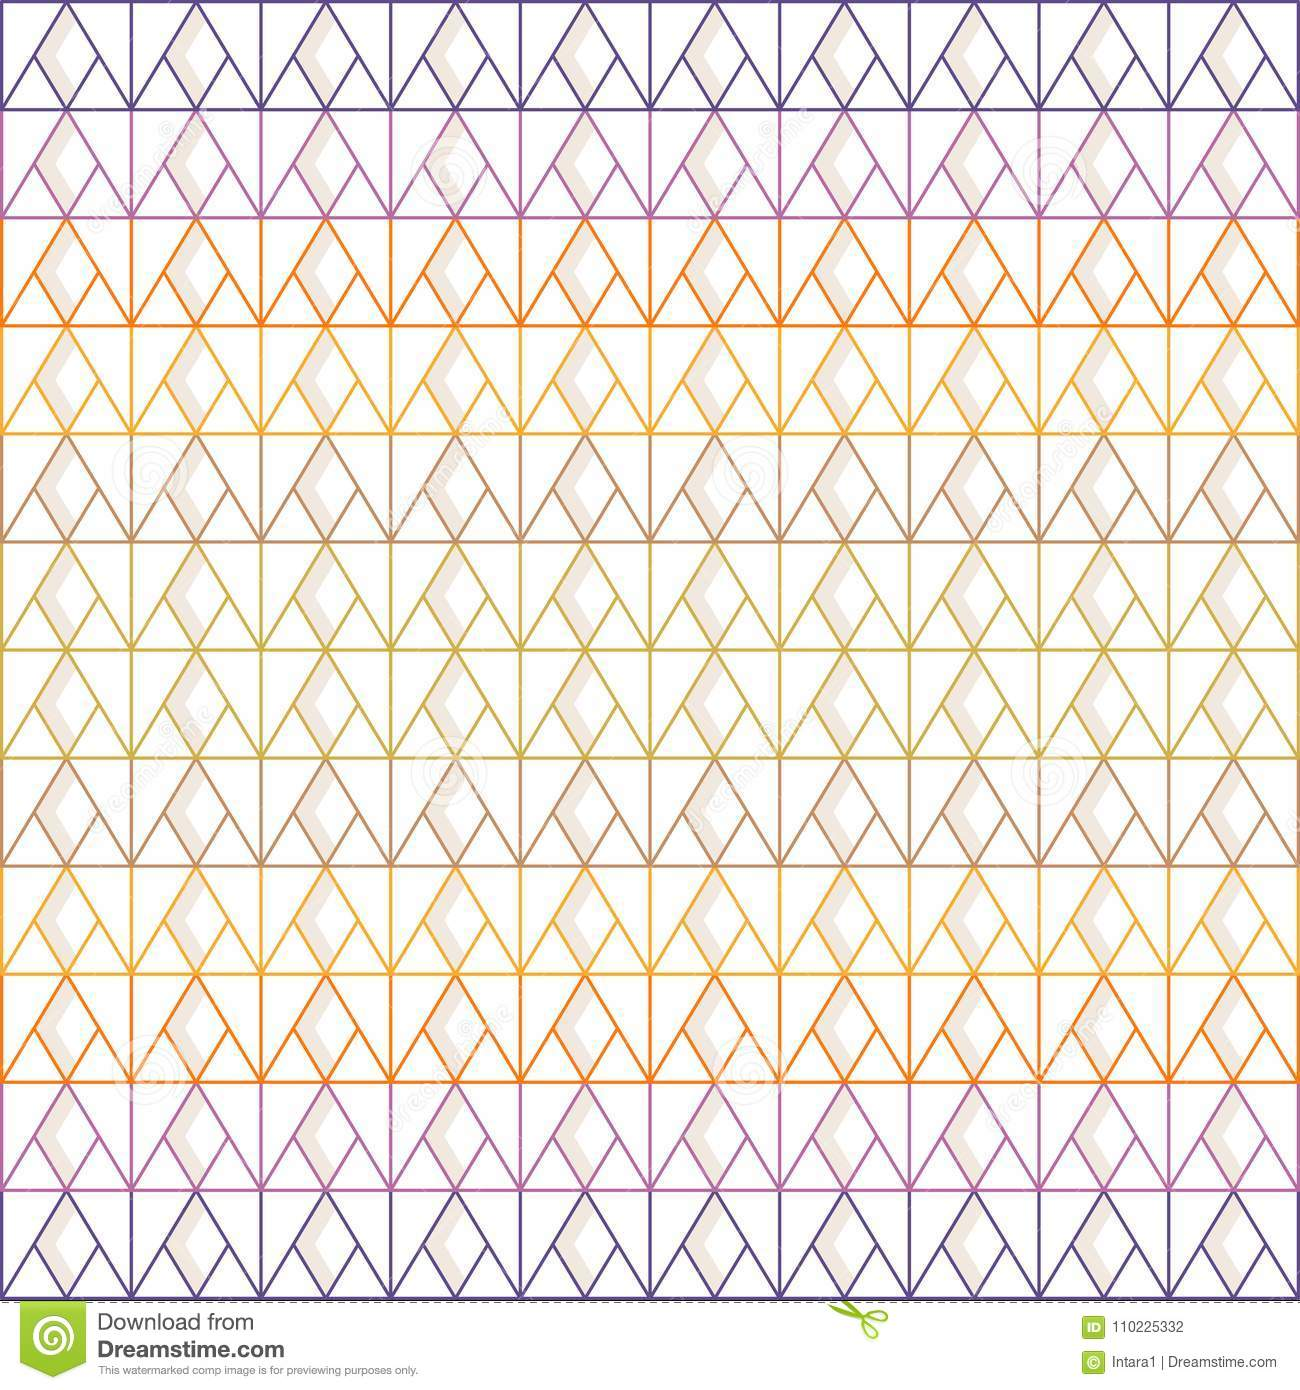 Seamless triangle and diamond pattern of multi-colored lines with gray shadow on white background; vector illustration.